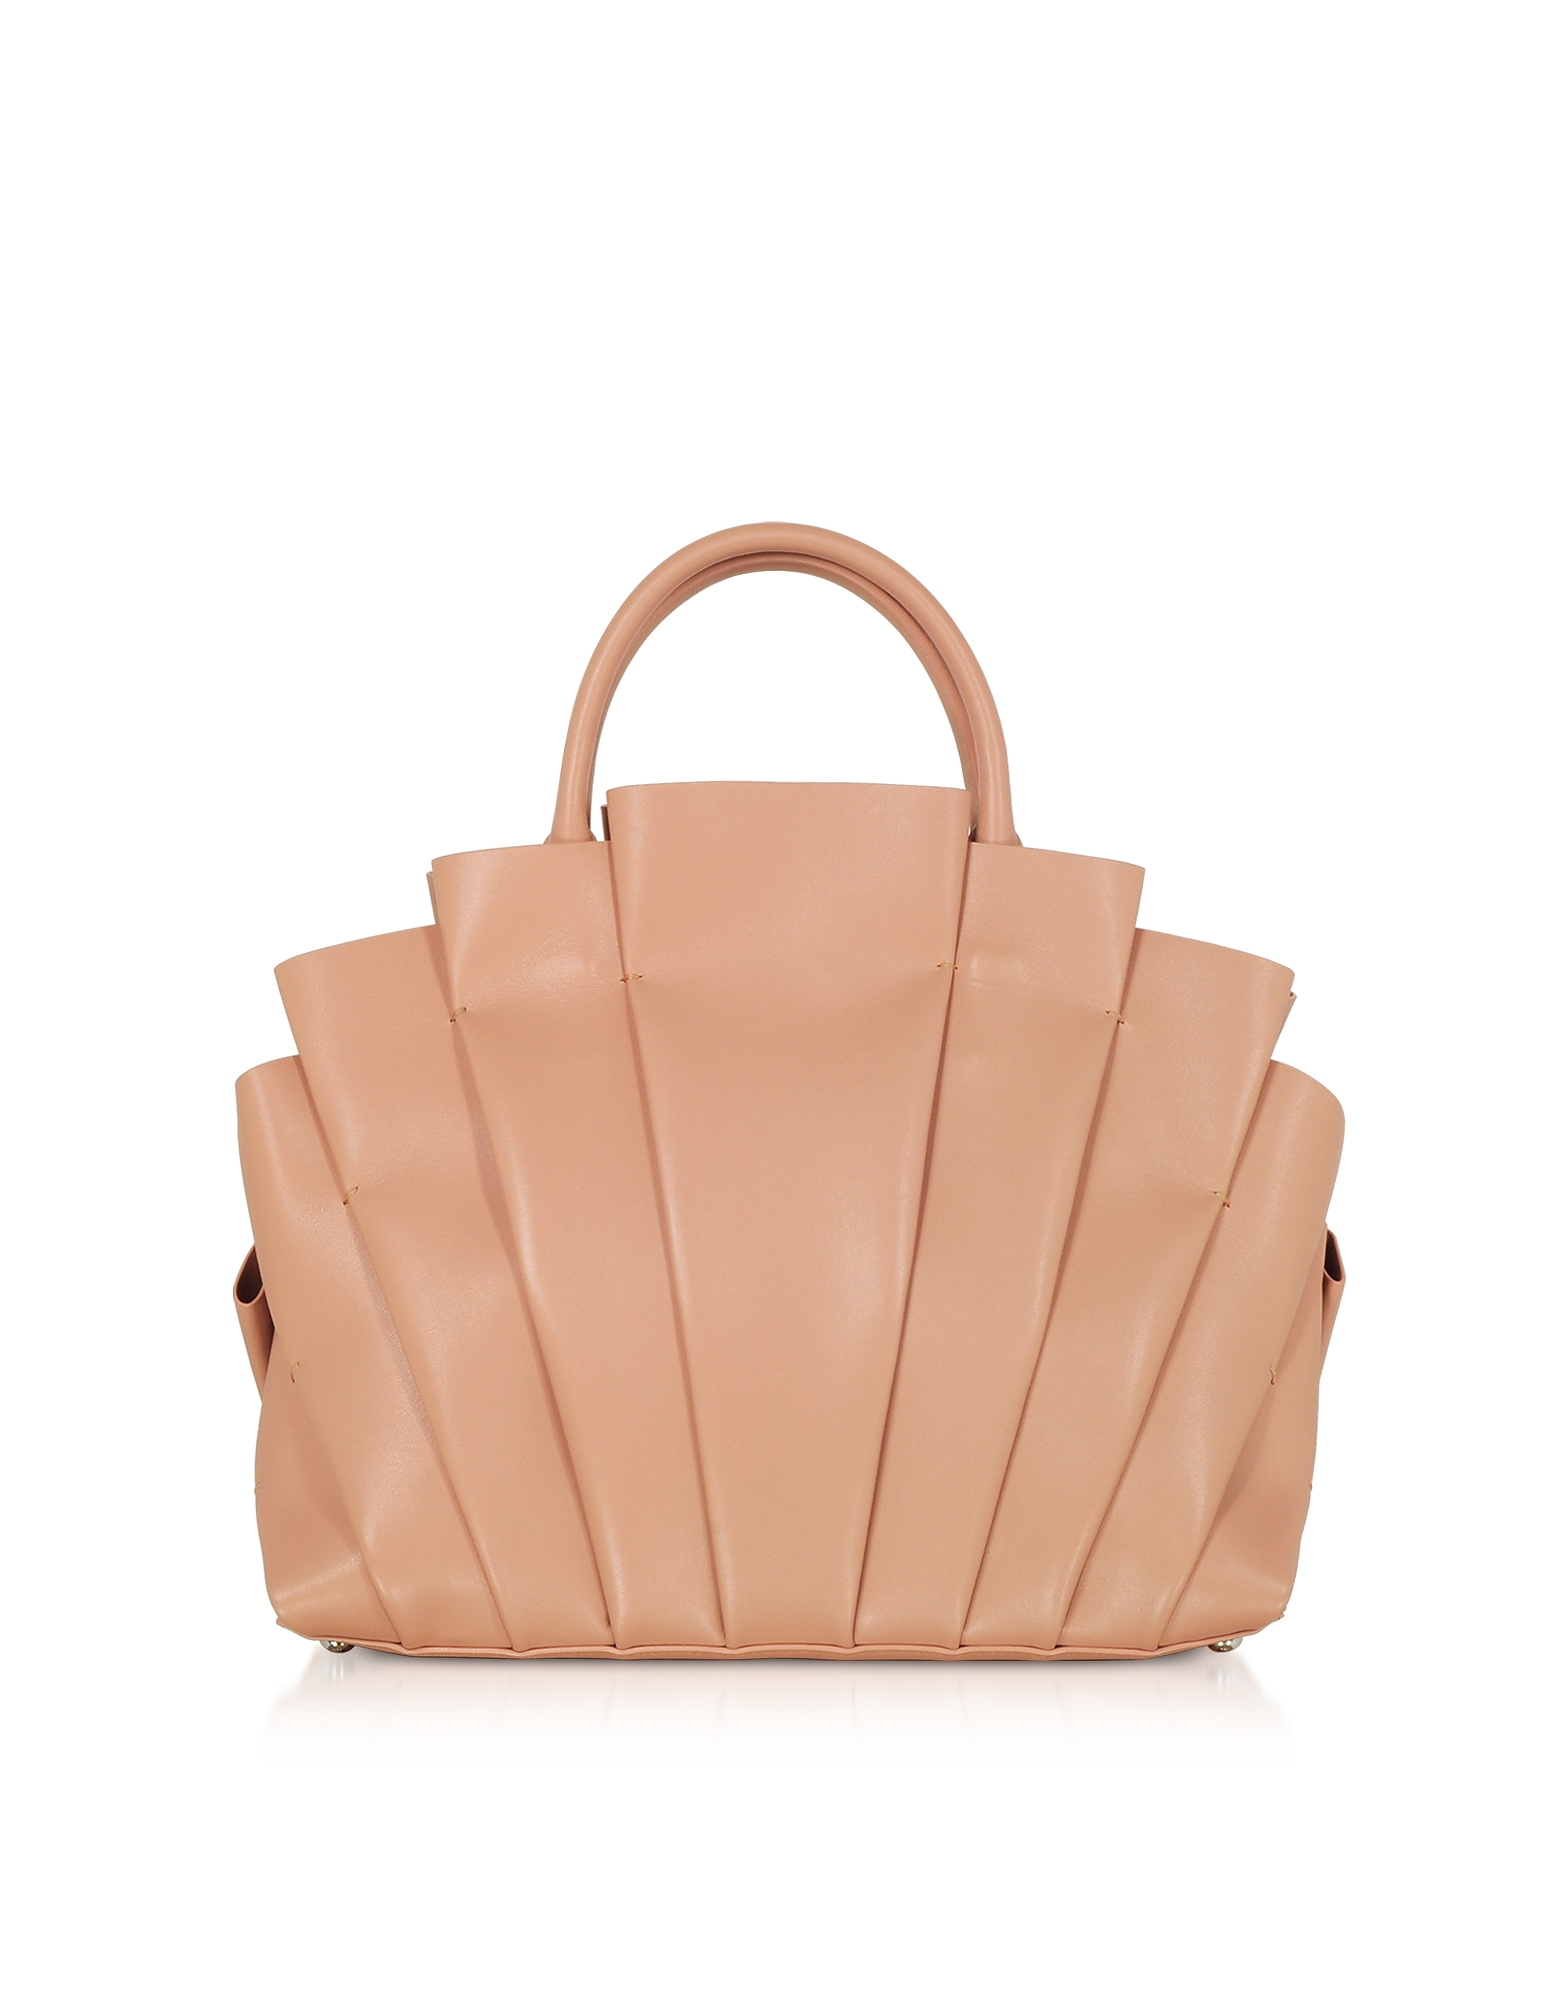 Blumarine Designer Handbags, Dahlia Nude Leather Top Handle Bag